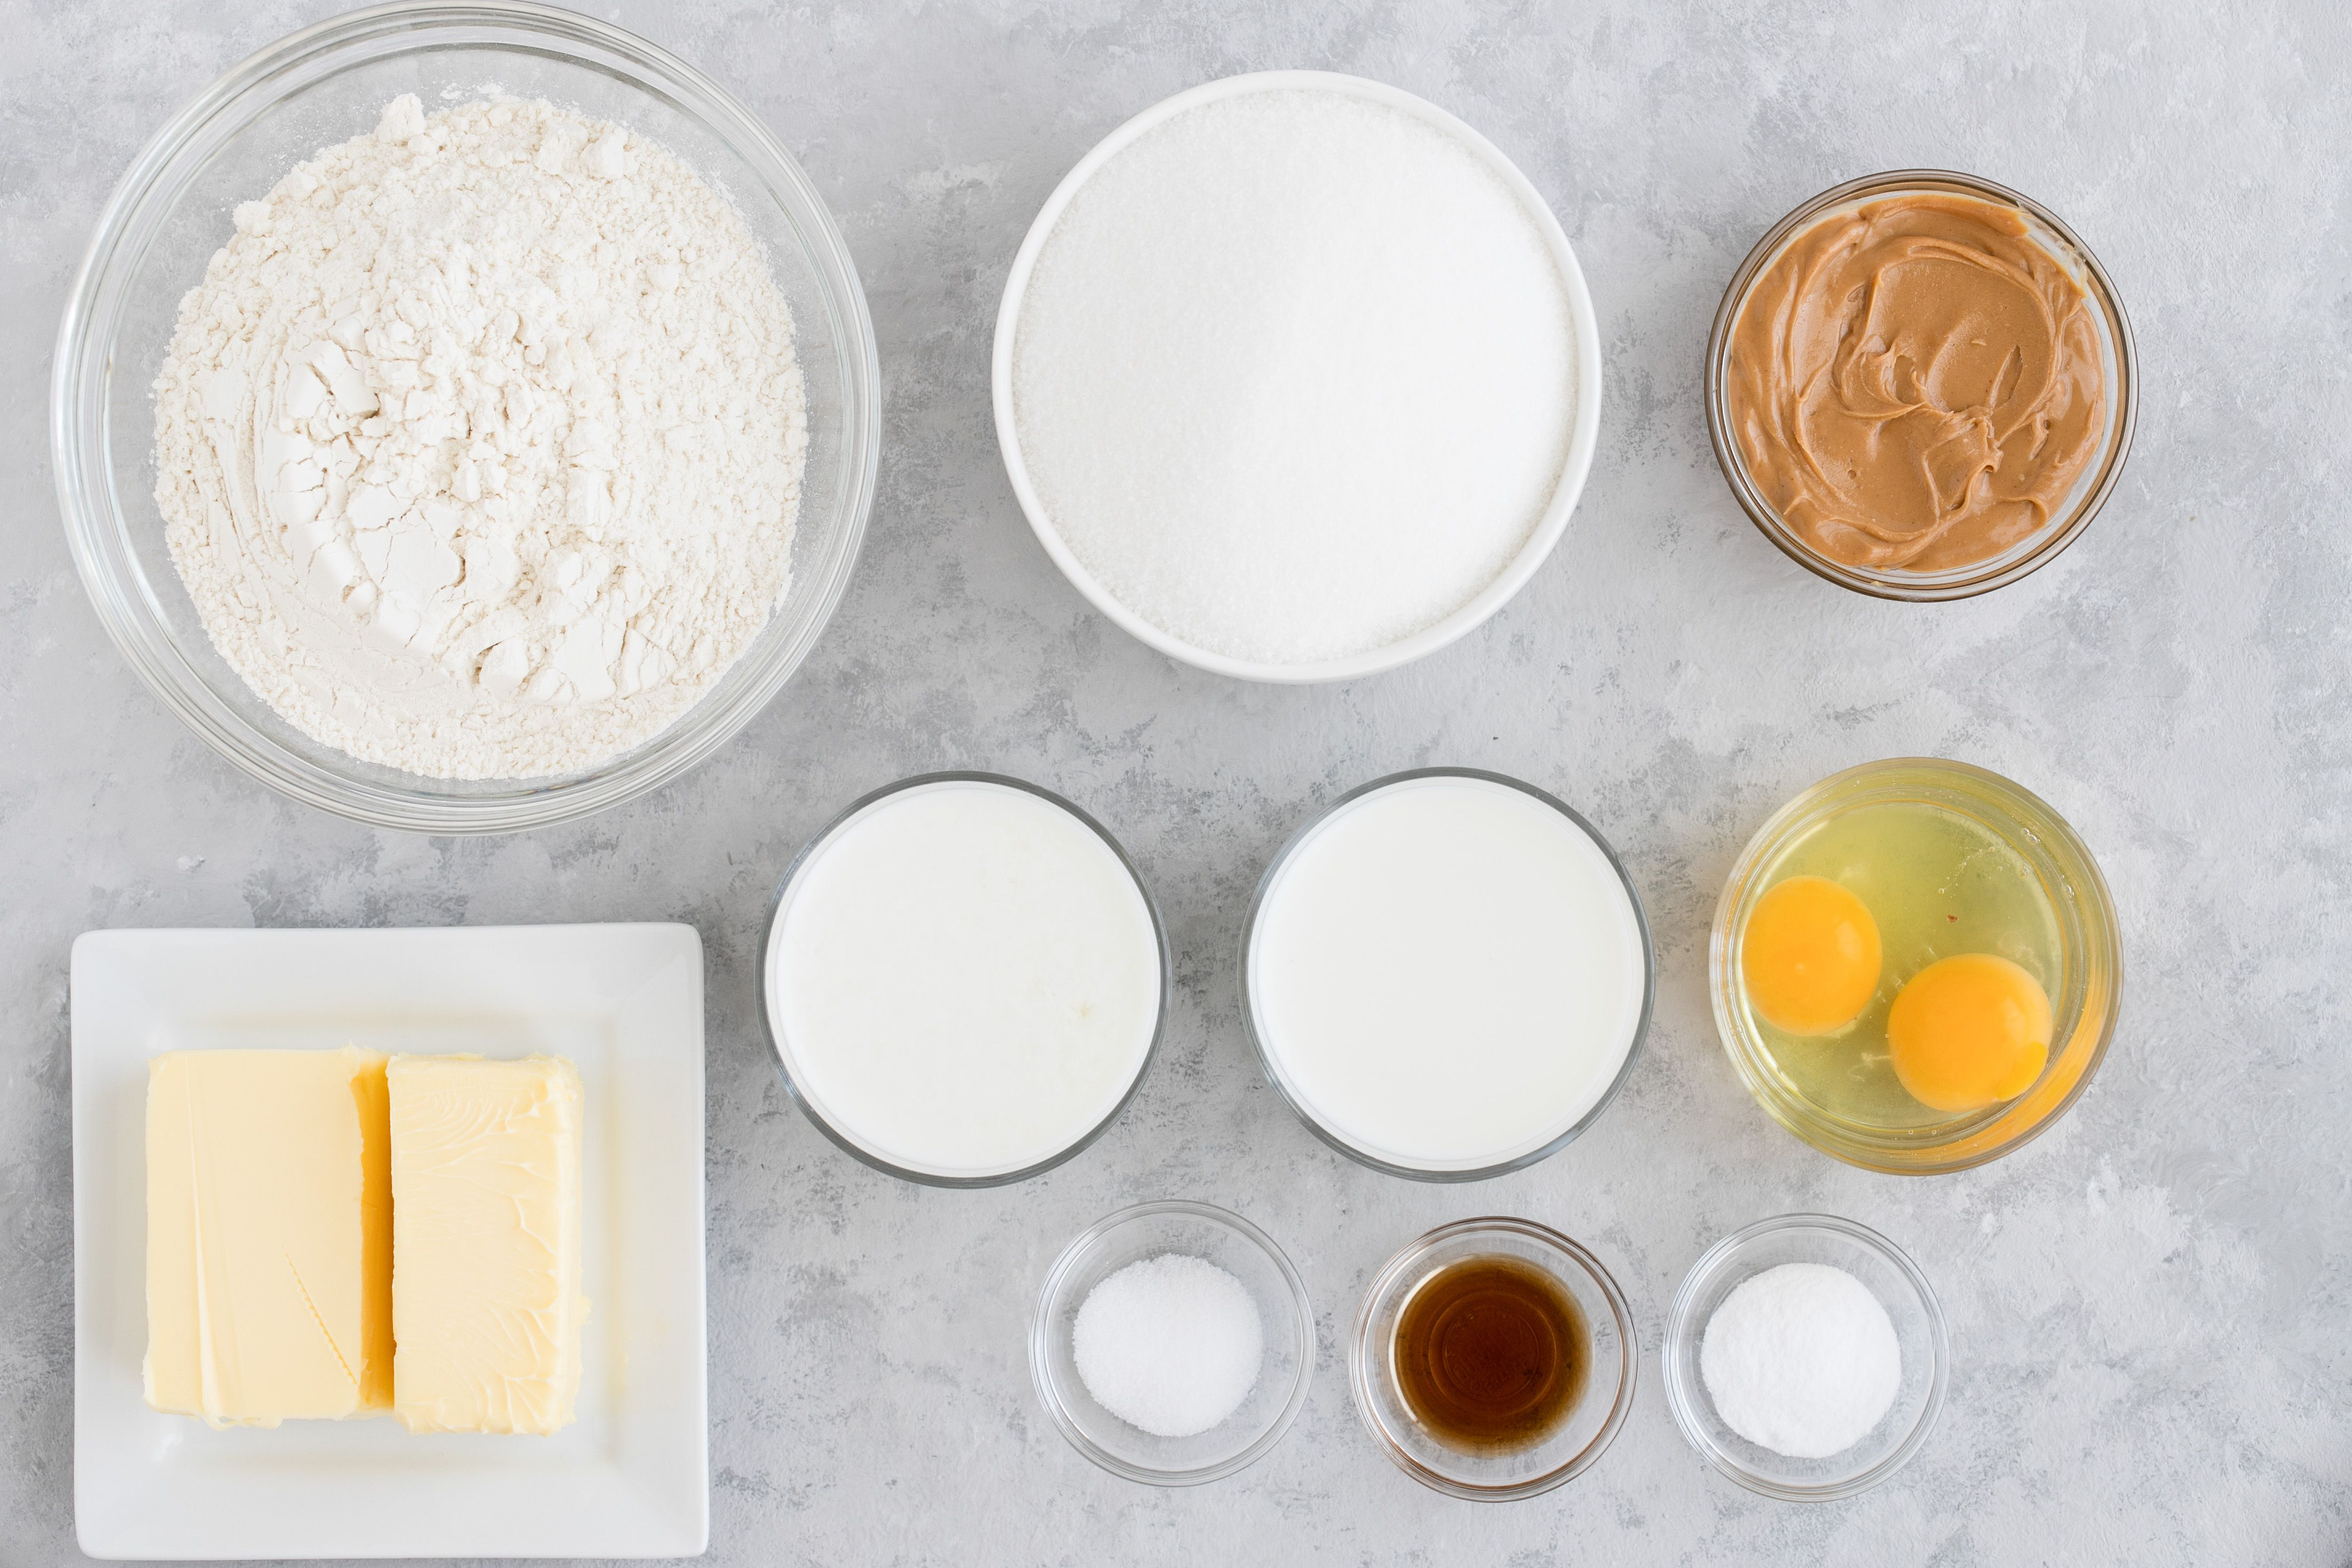 Ingredients for peanut butter cake